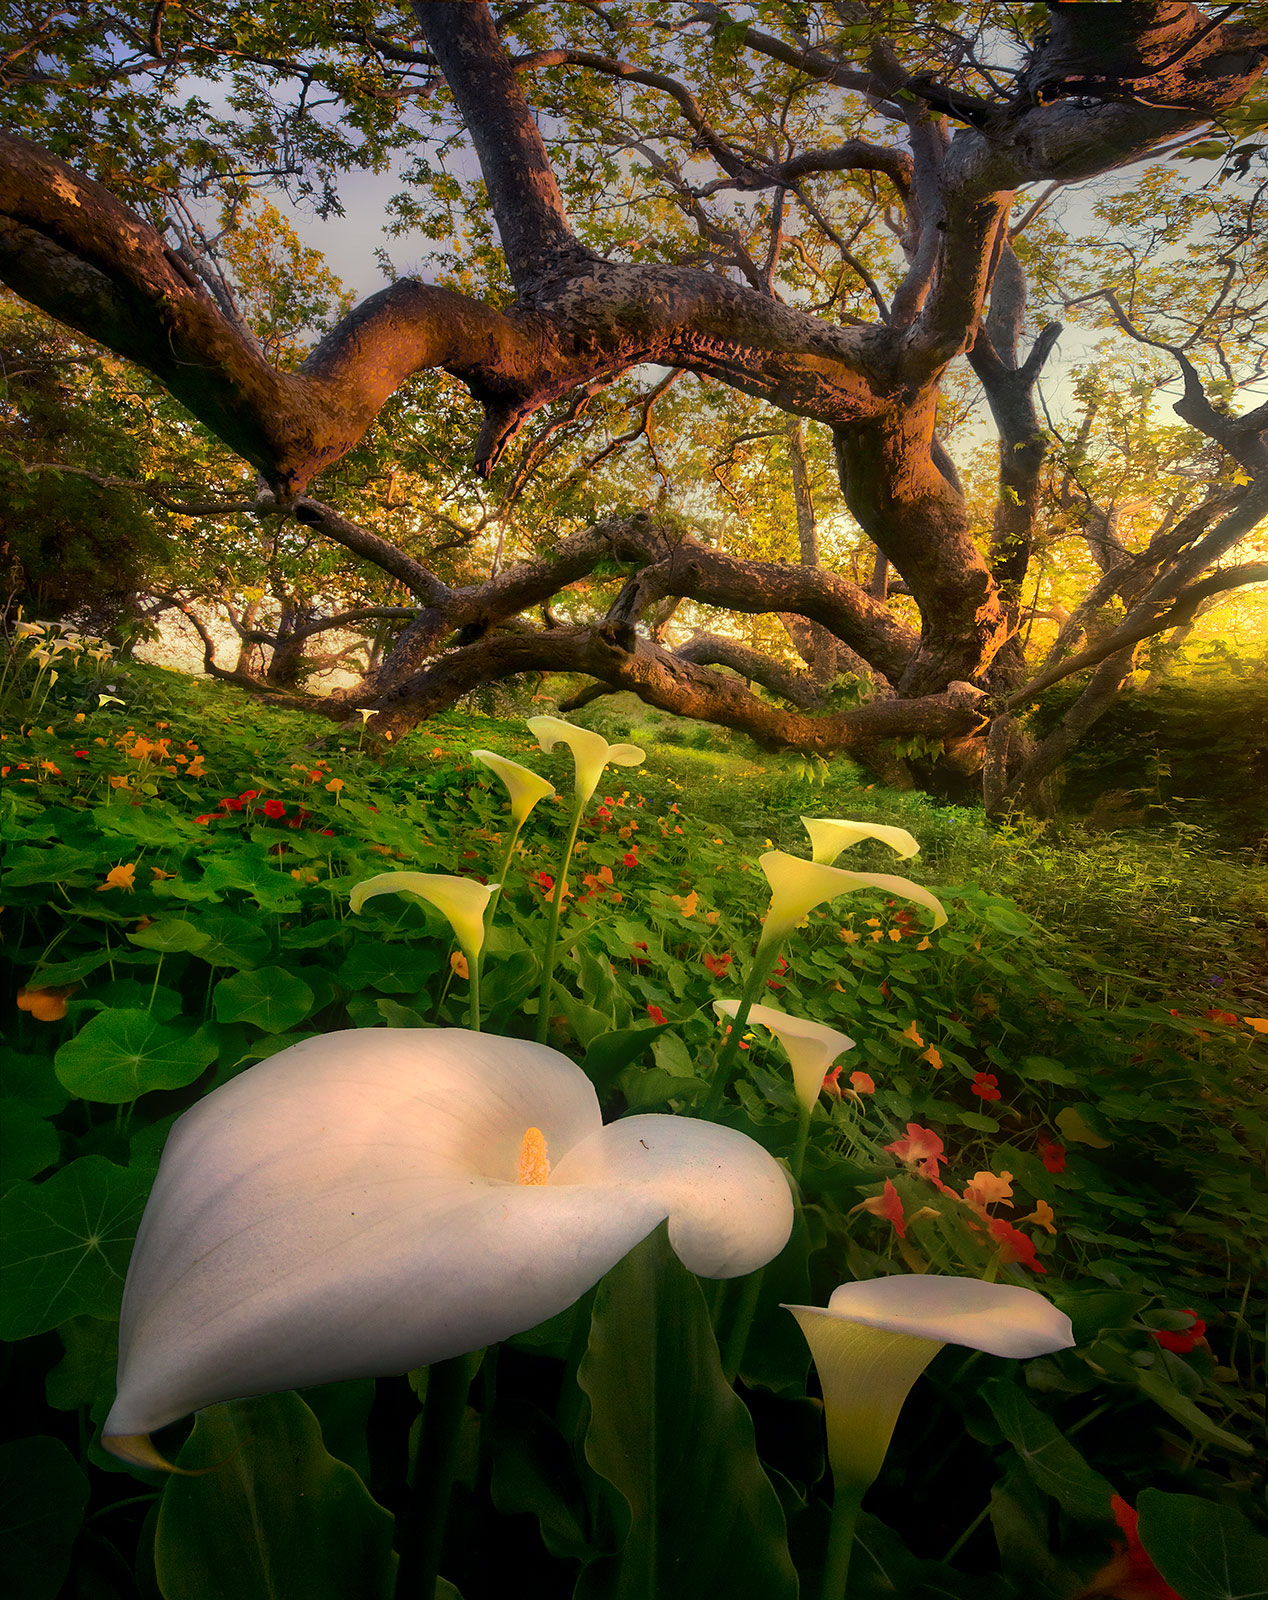 eucalyptus, california, lilies, coast, sunset, forest, photo